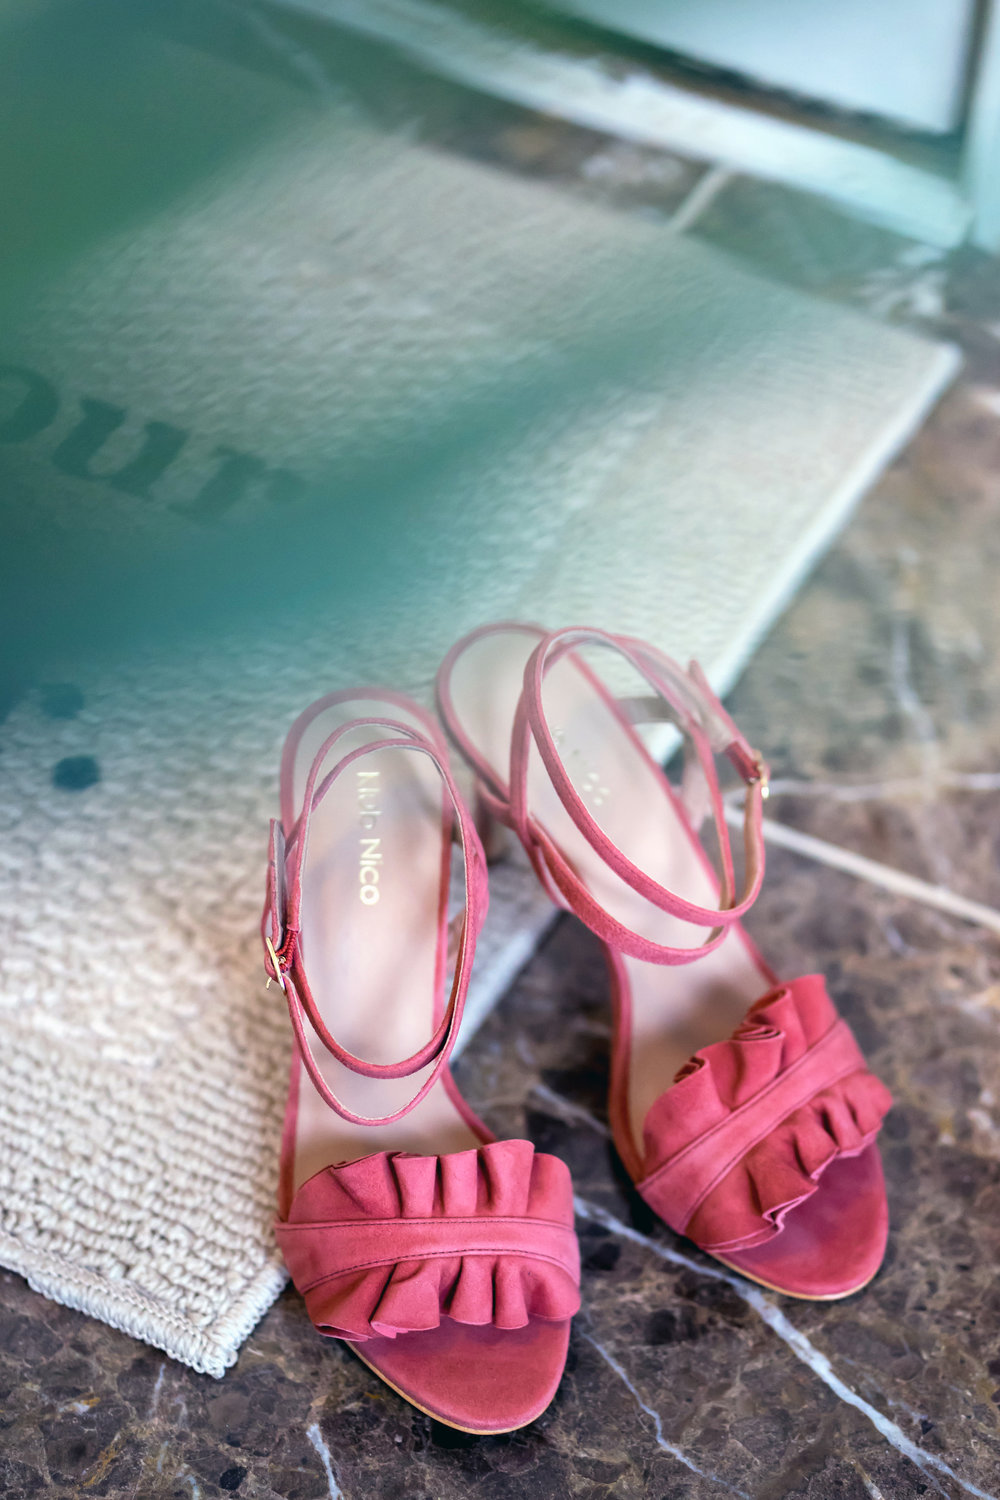 Maggie a la Mode - Weekend Sales and What I'm Buying Klub Nico Ansley Sandal.jpg